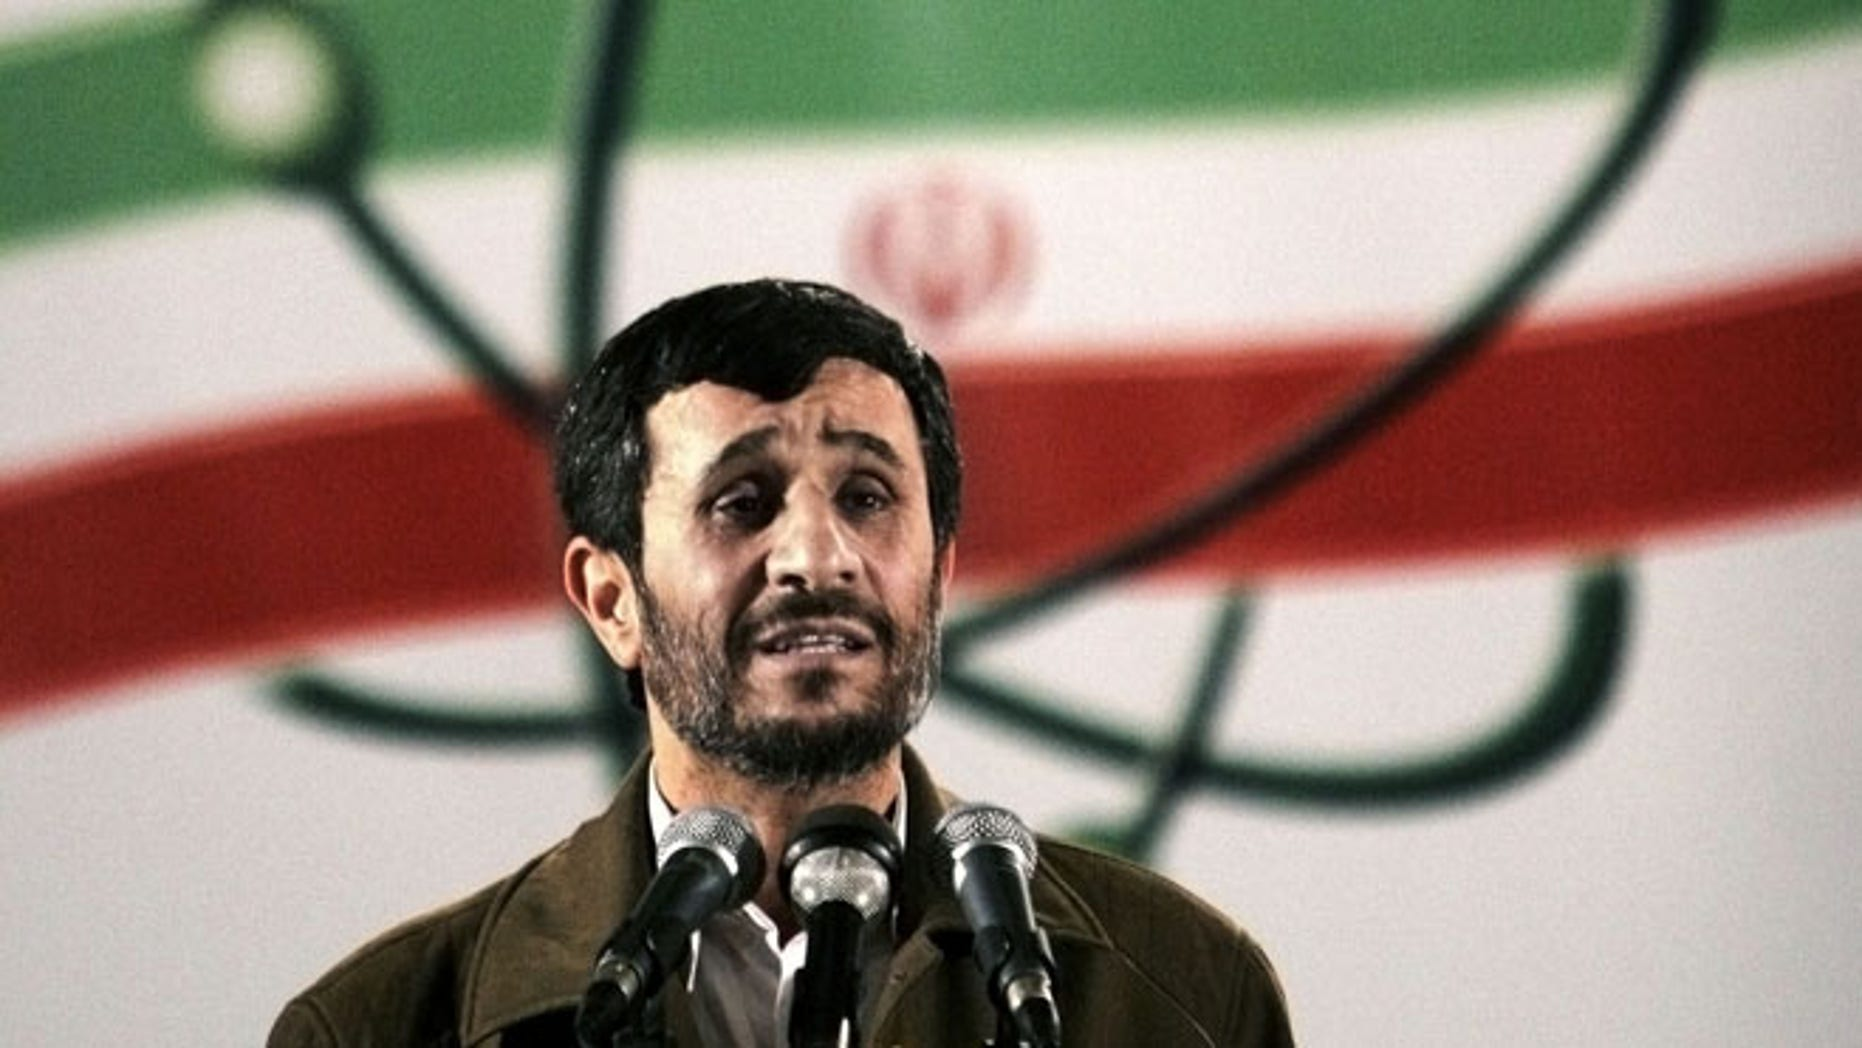 April, 9, 2007: Iranian President Mahmoud Ahmadinejad speaks at a ceremony in Iran's nuclear enrichment facility in Natanz, Iran.